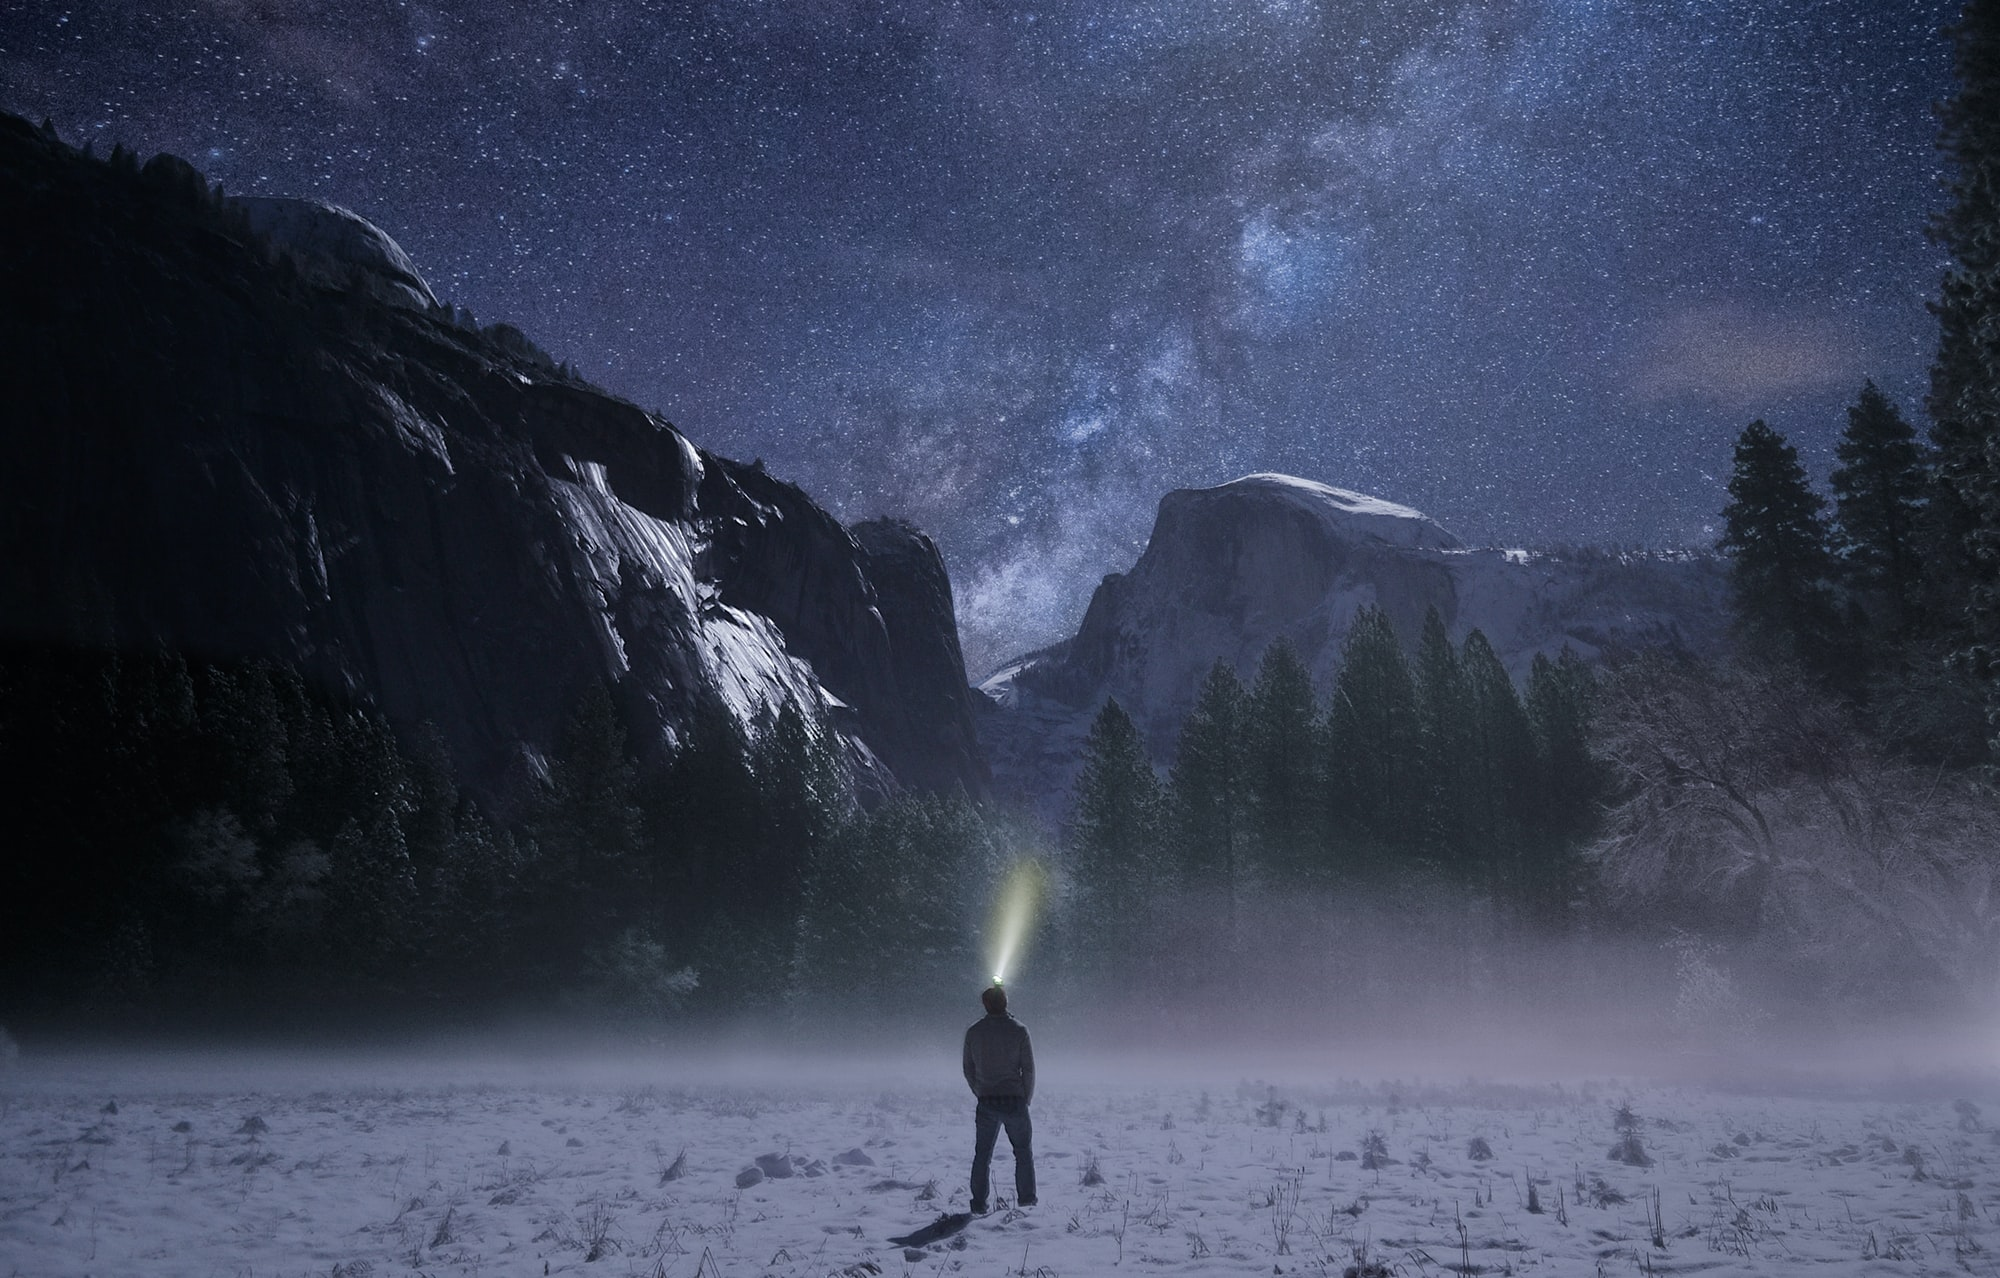 Is science fiction a myth?